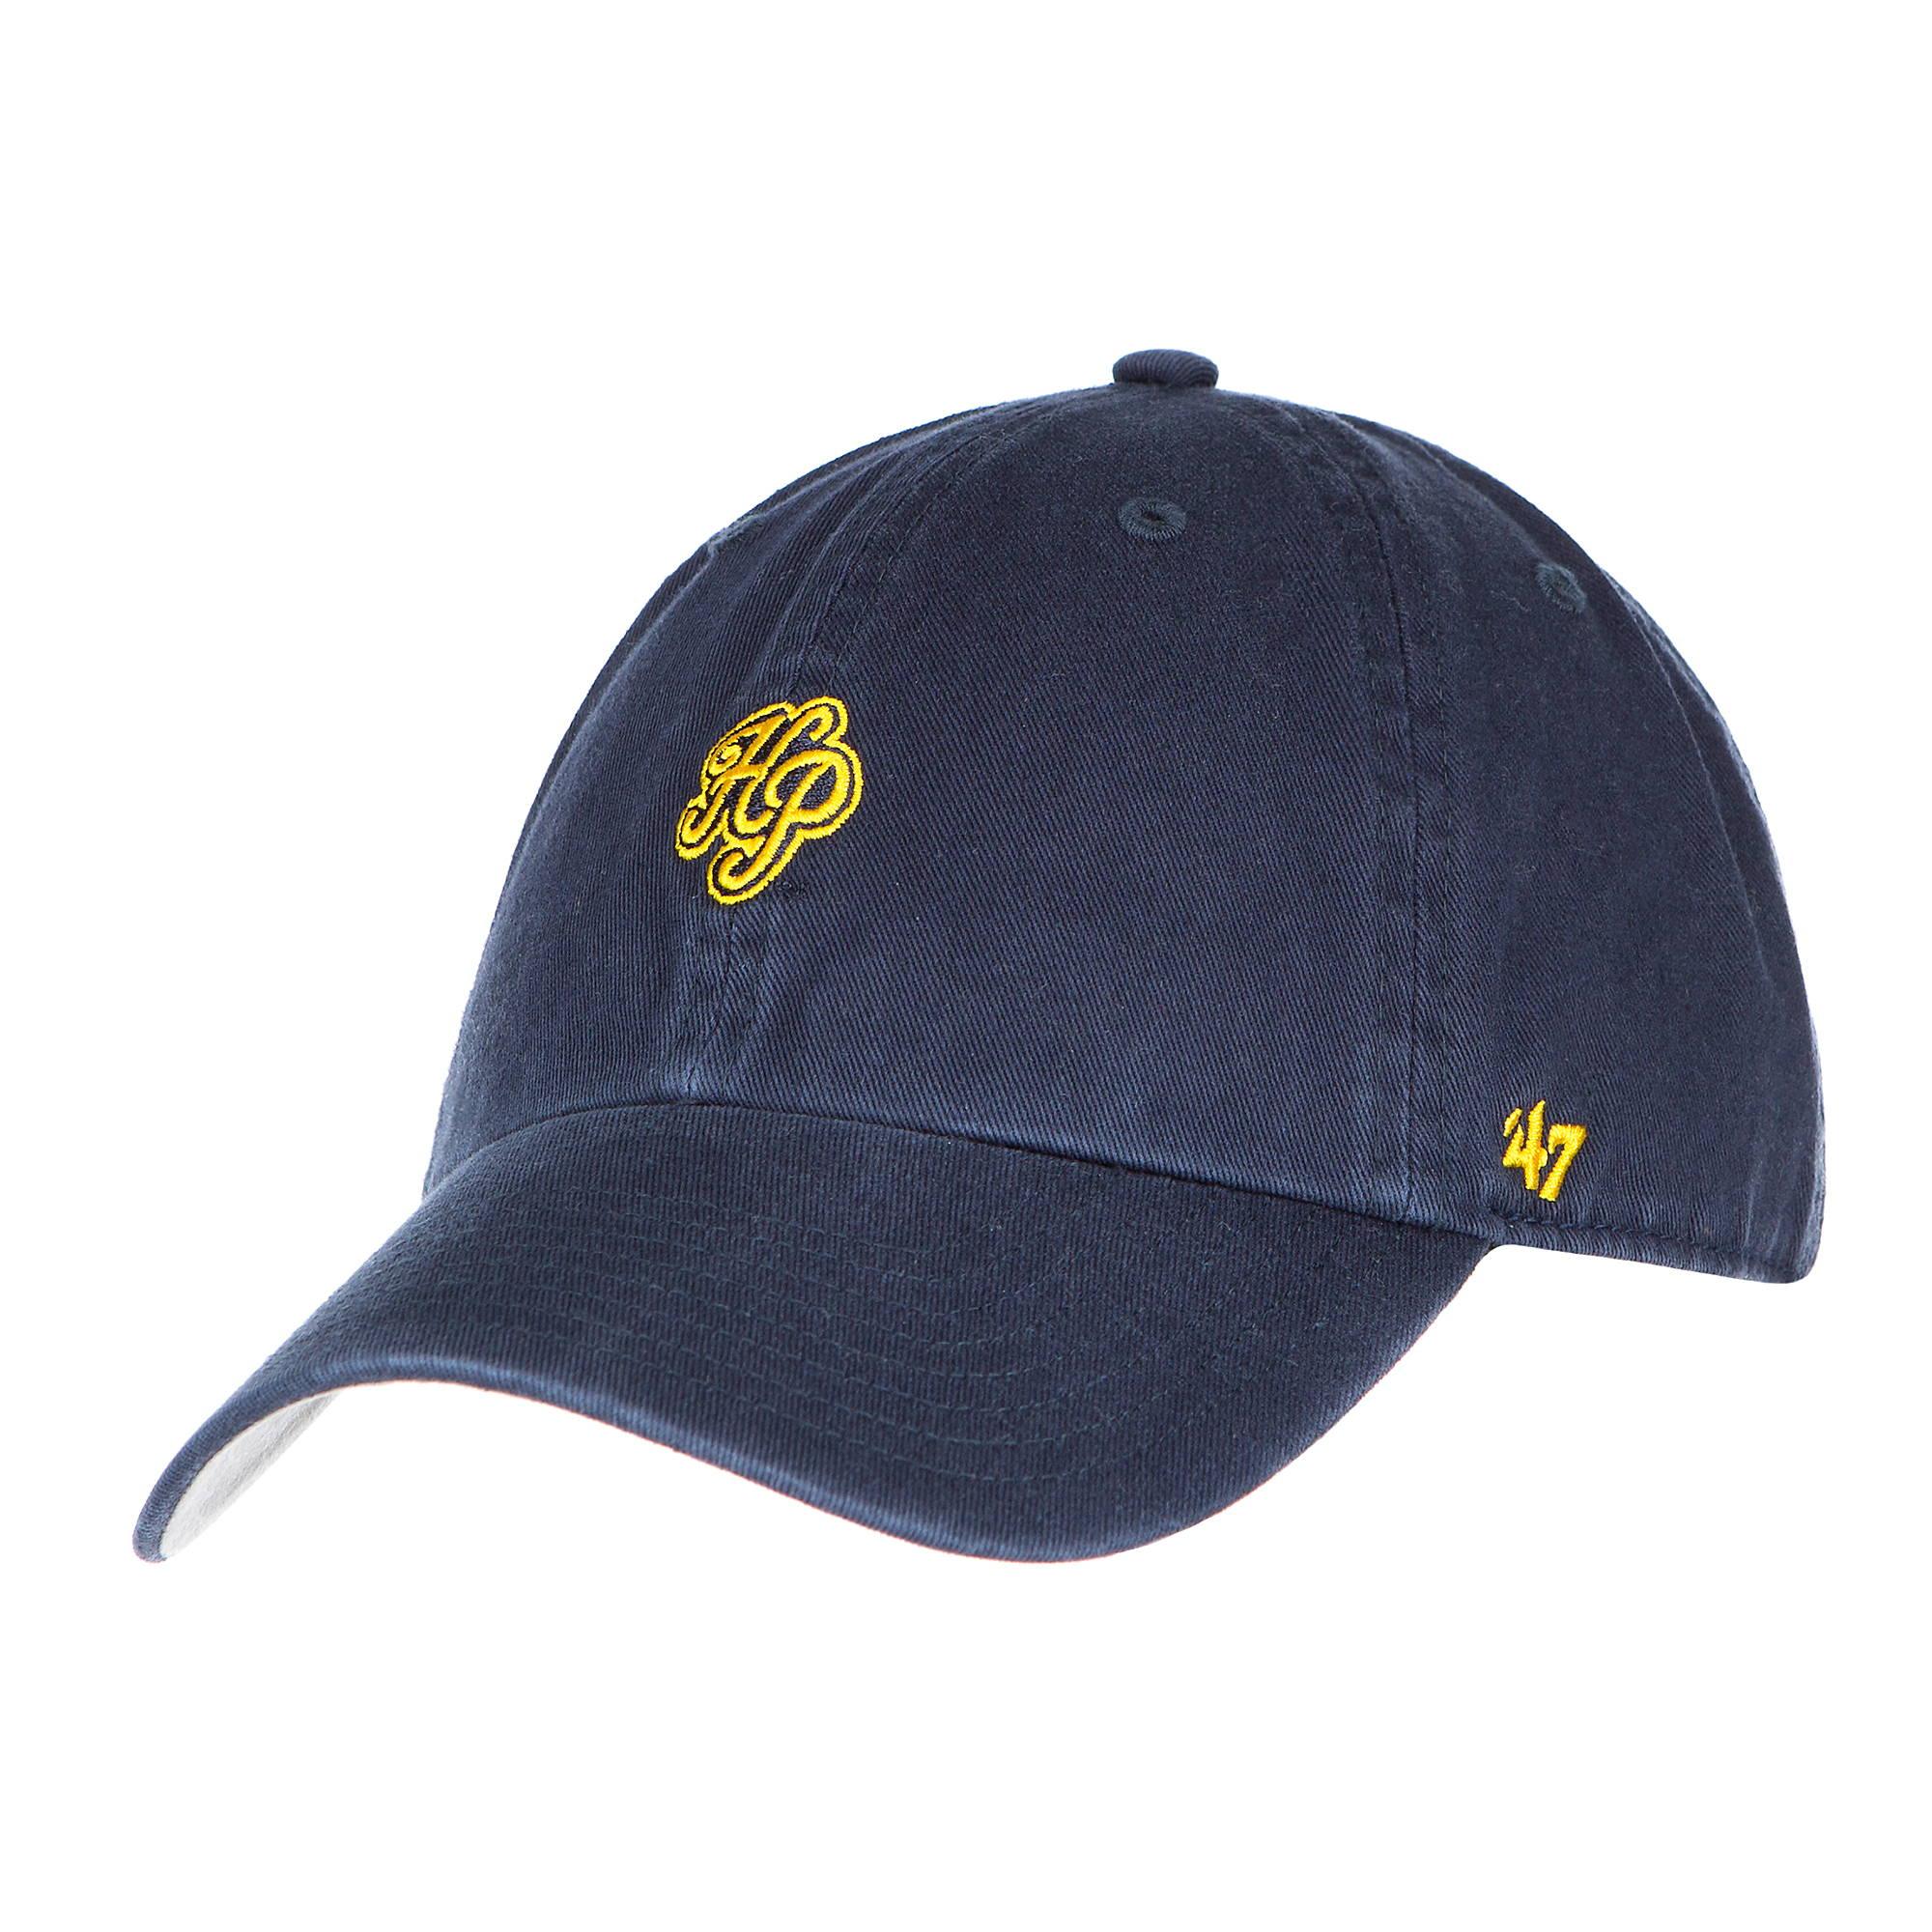 Highland Park Scots 47 Base Runner Cap